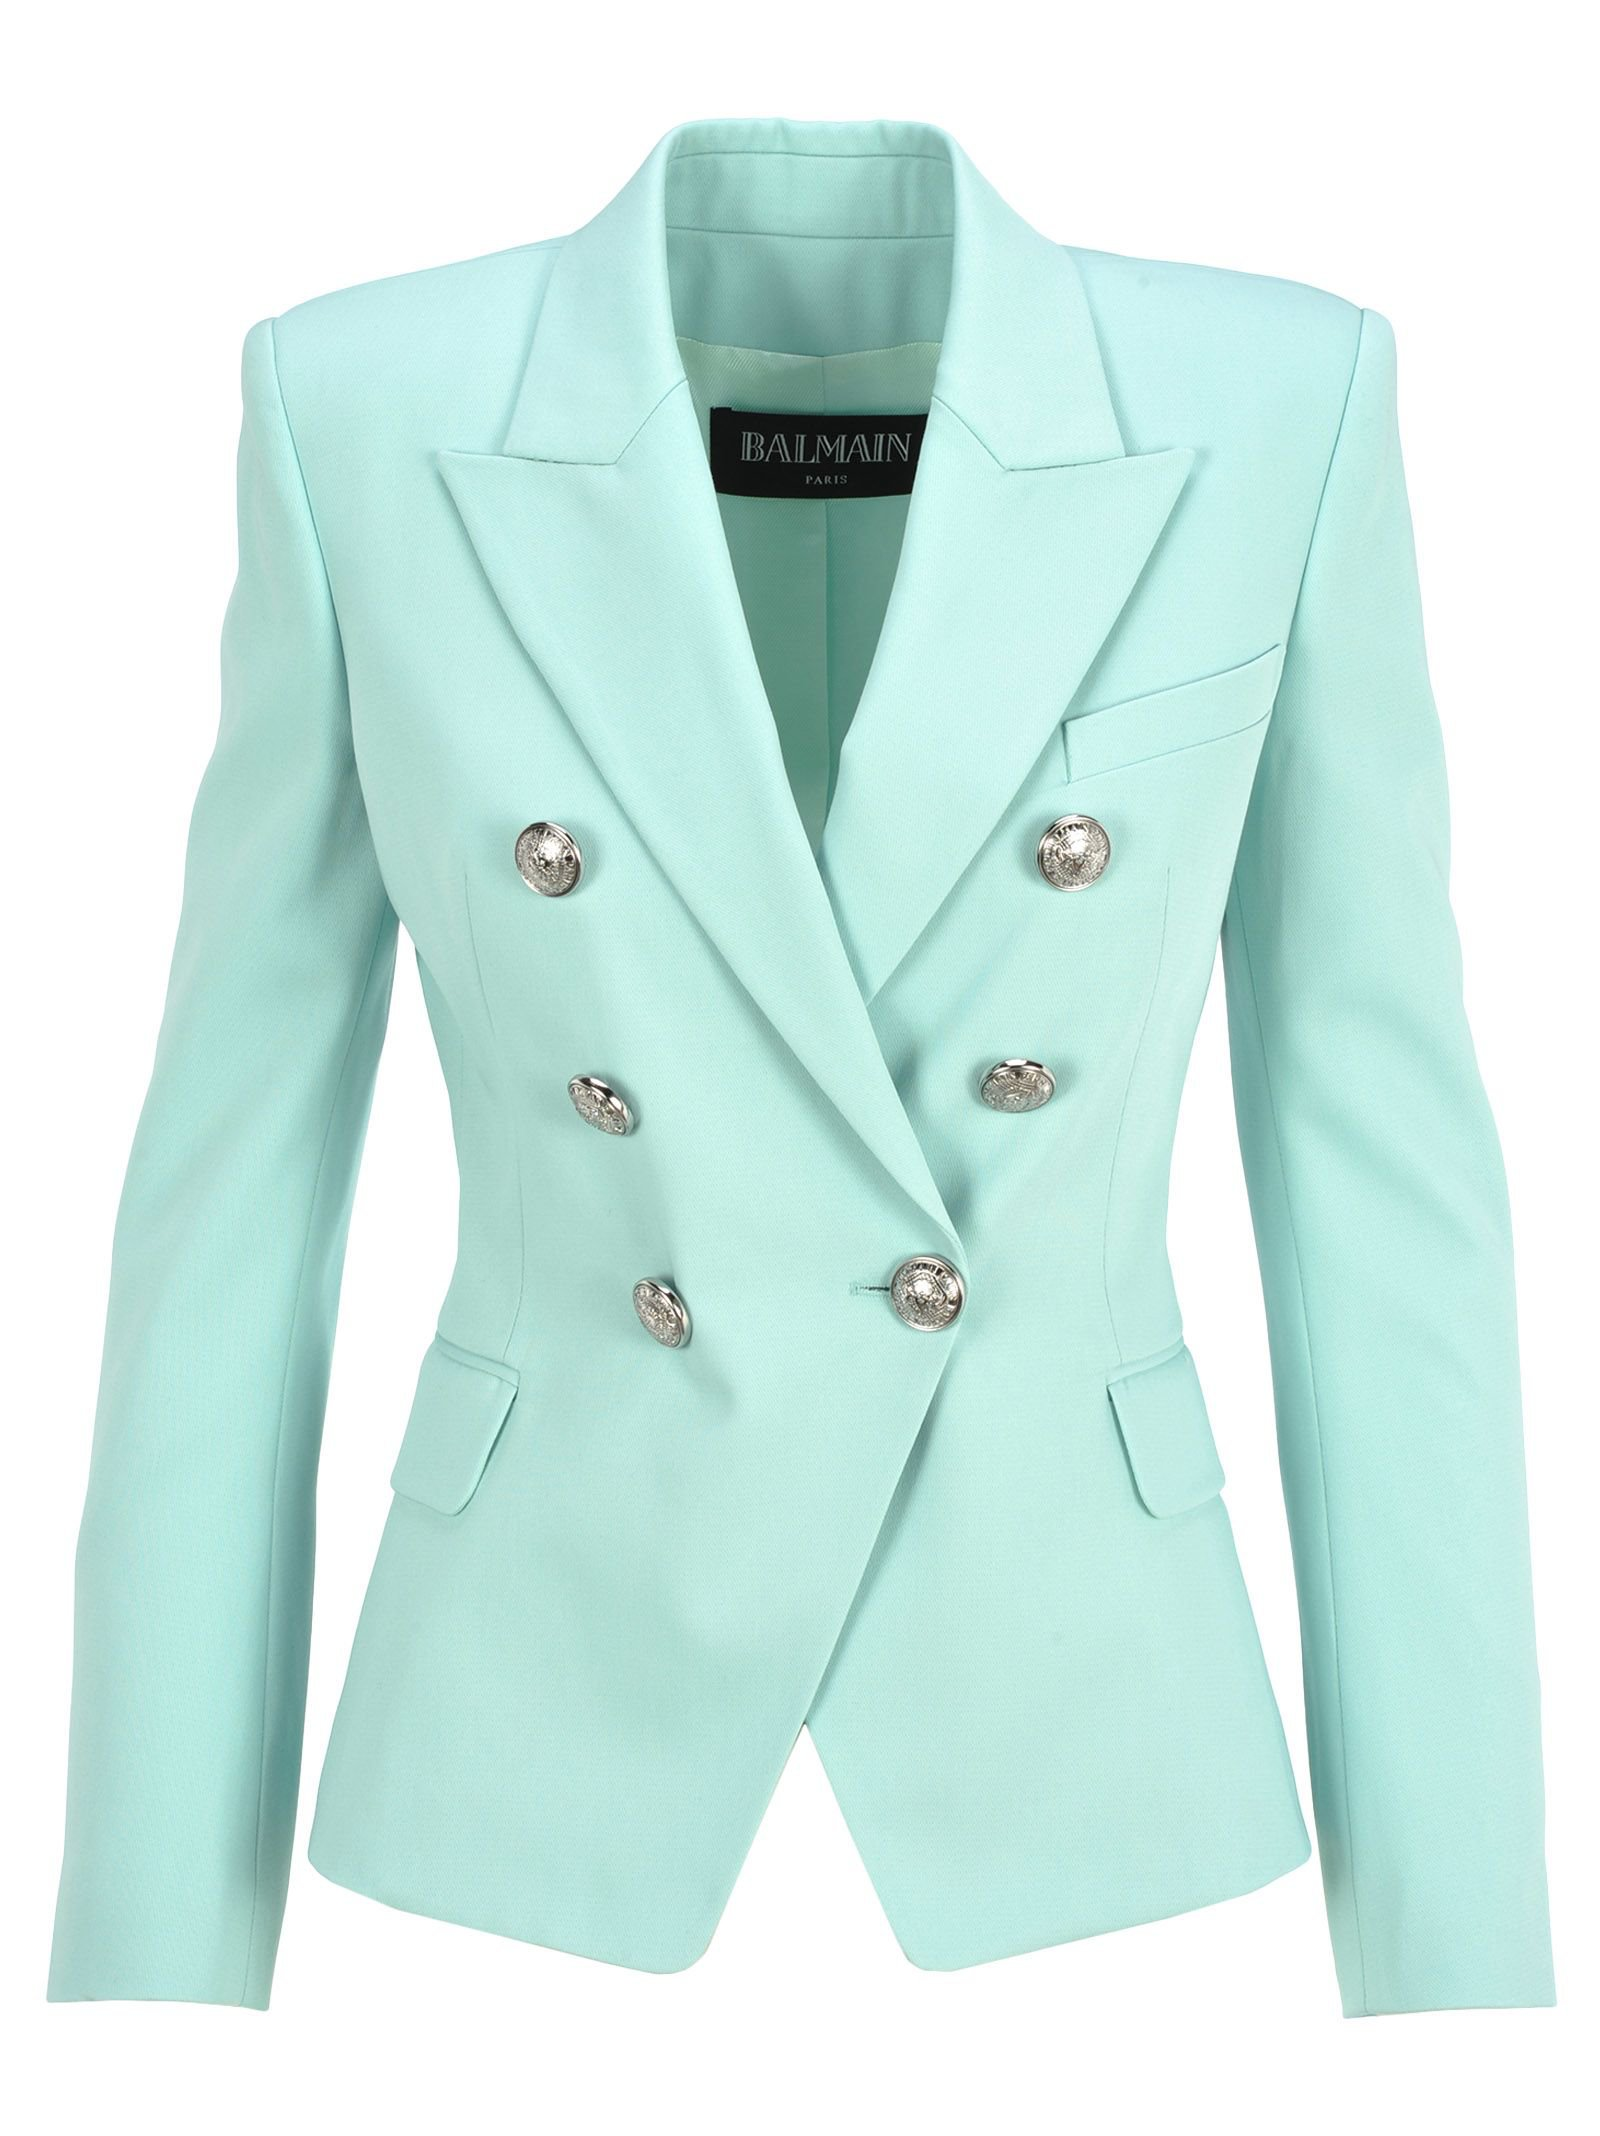 Balmain Jacket 6 Botton